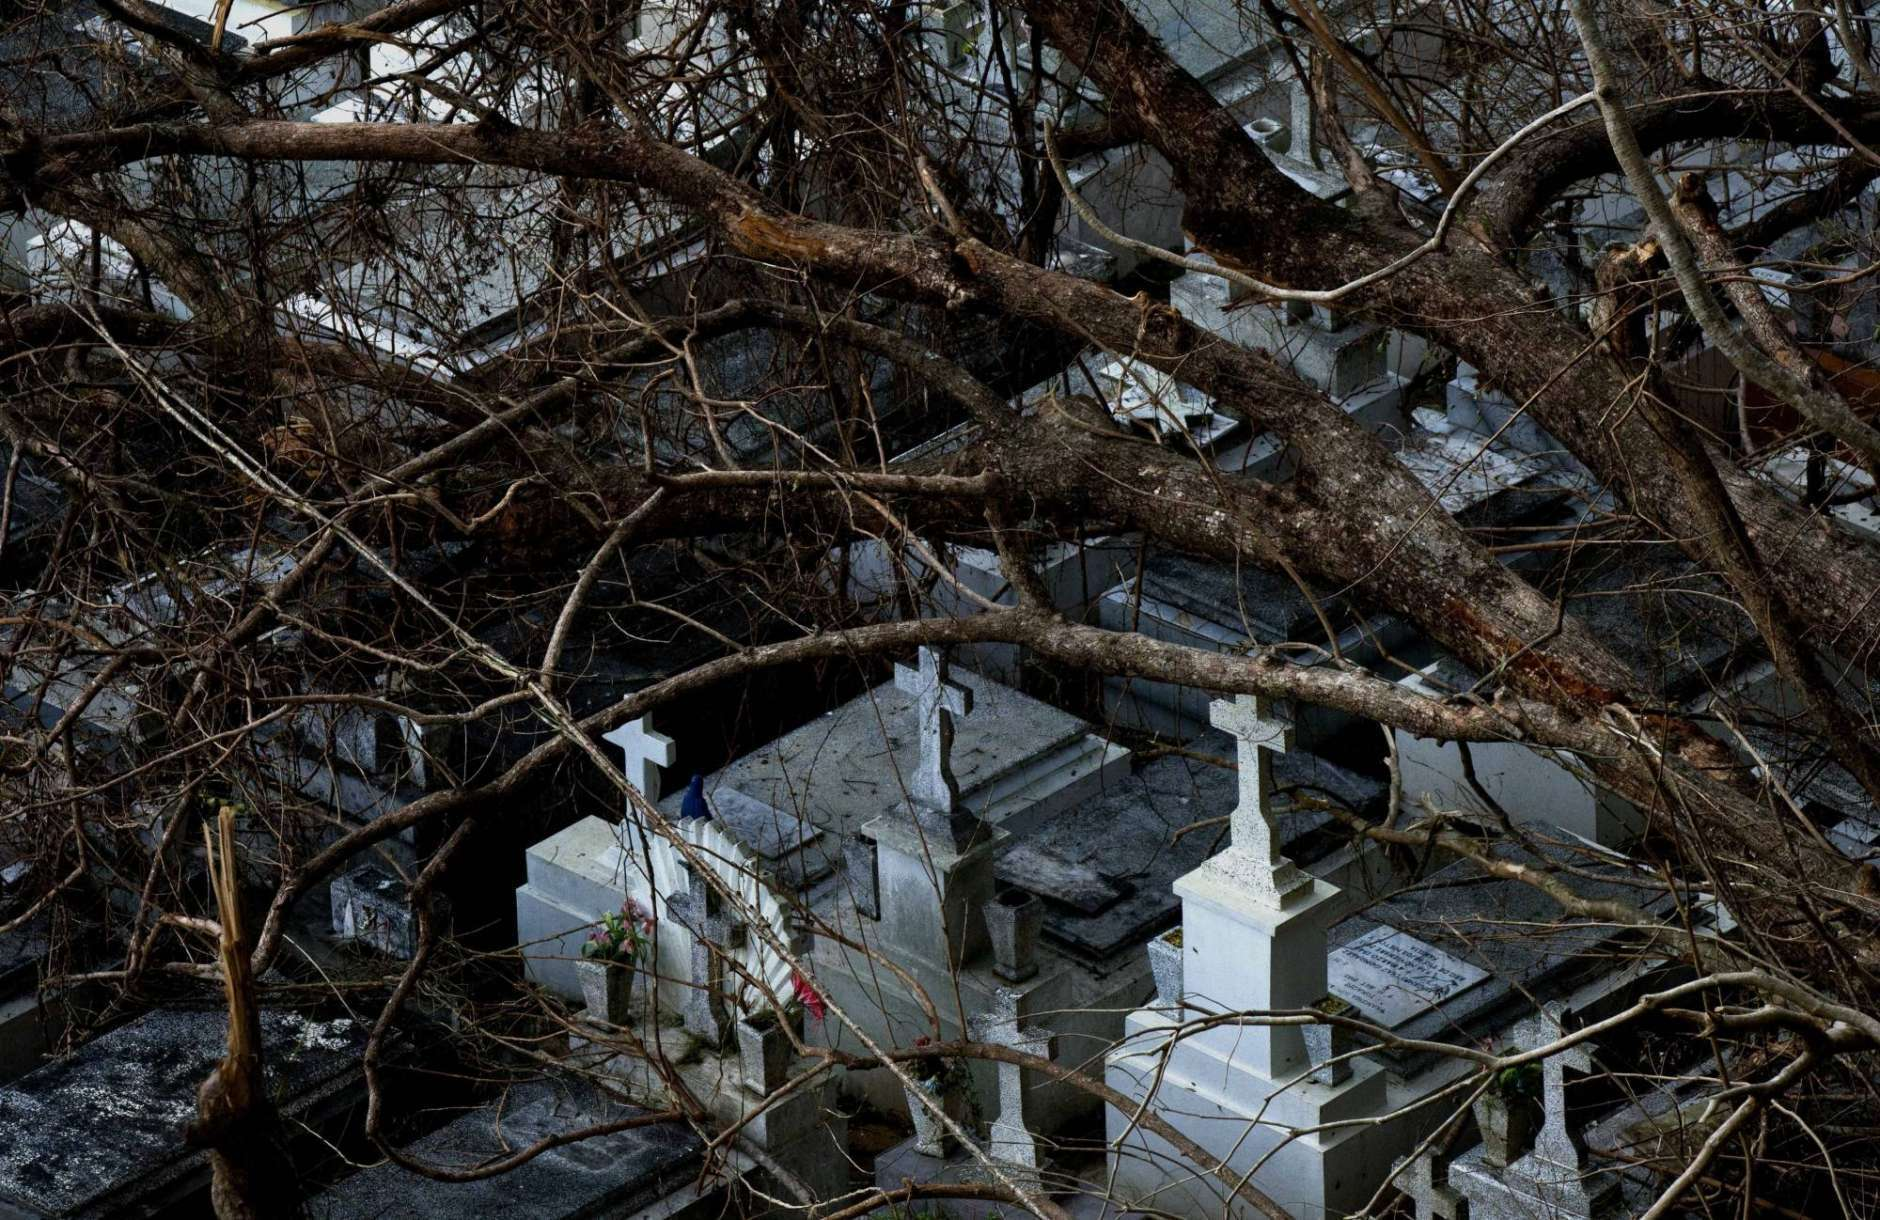 Down trees rest on tombs at the cemetery of Lares after the passing of Hurricane Maria, in Puerto Rico, Tuesday, Sept. 26, 2017. Gov. Governor Ricardo Rossello and Resident Commissioner Jennifer Gonzalez, the island's representative in Congress, have said they intend to seek more than a billion in federal assistance and they have praised the response to the disaster by President Donald Trump, who plans to visit Puerto Rico next week, as well as FEMA Administrator Brock Long. (AP Photo/Ramon Espinosa)